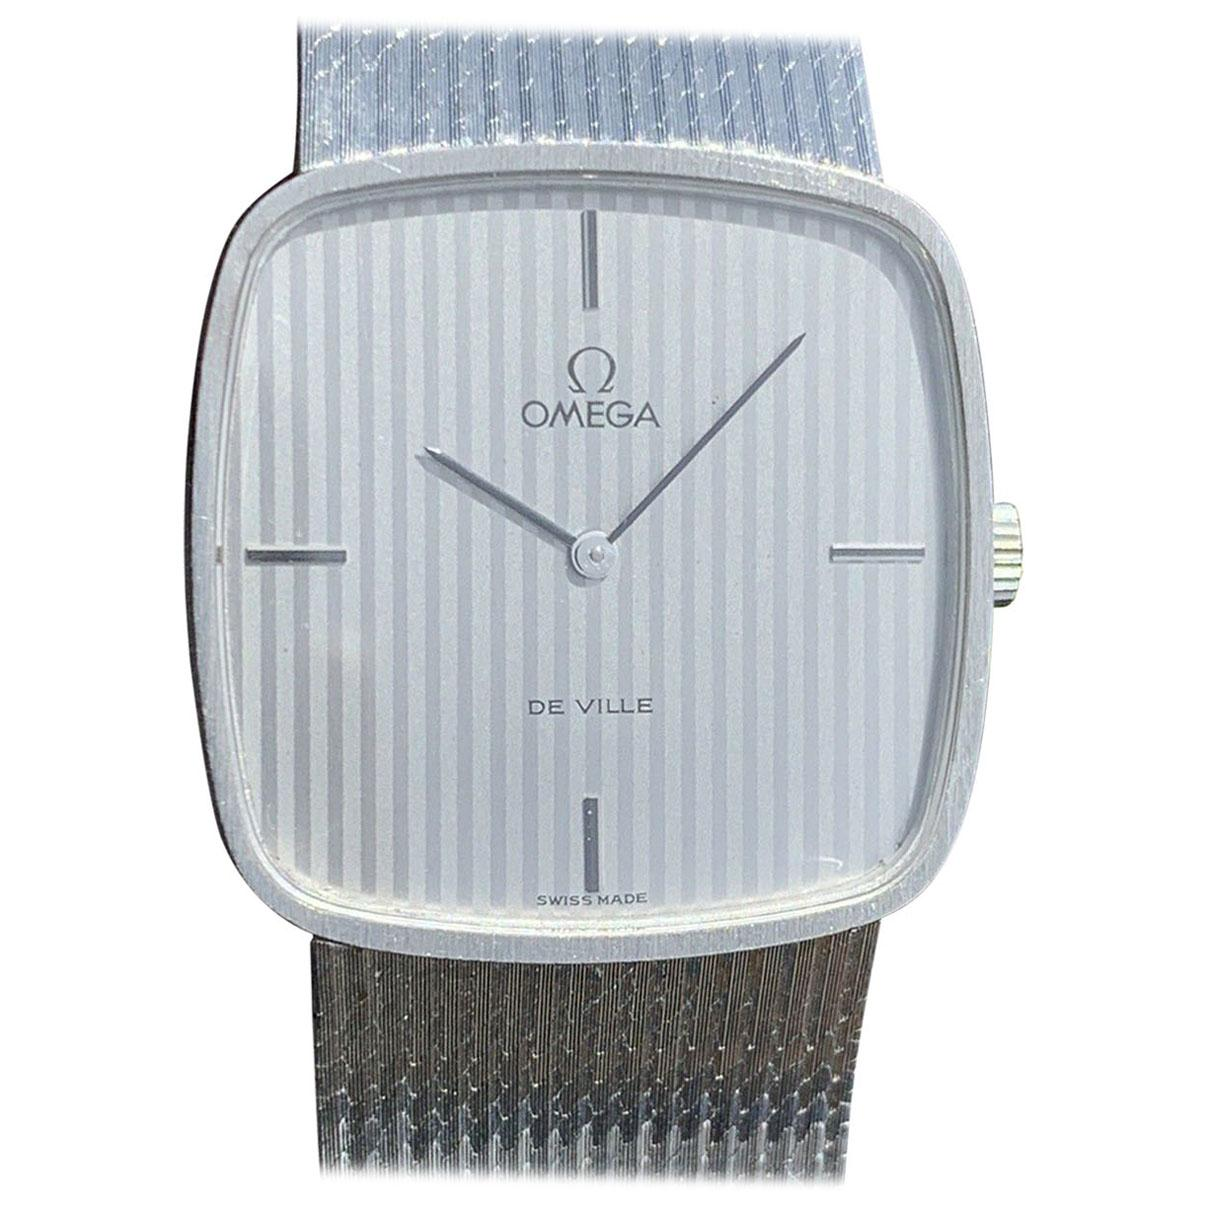 Omega De Ville 18 Karat White gold Manual Winding Watch